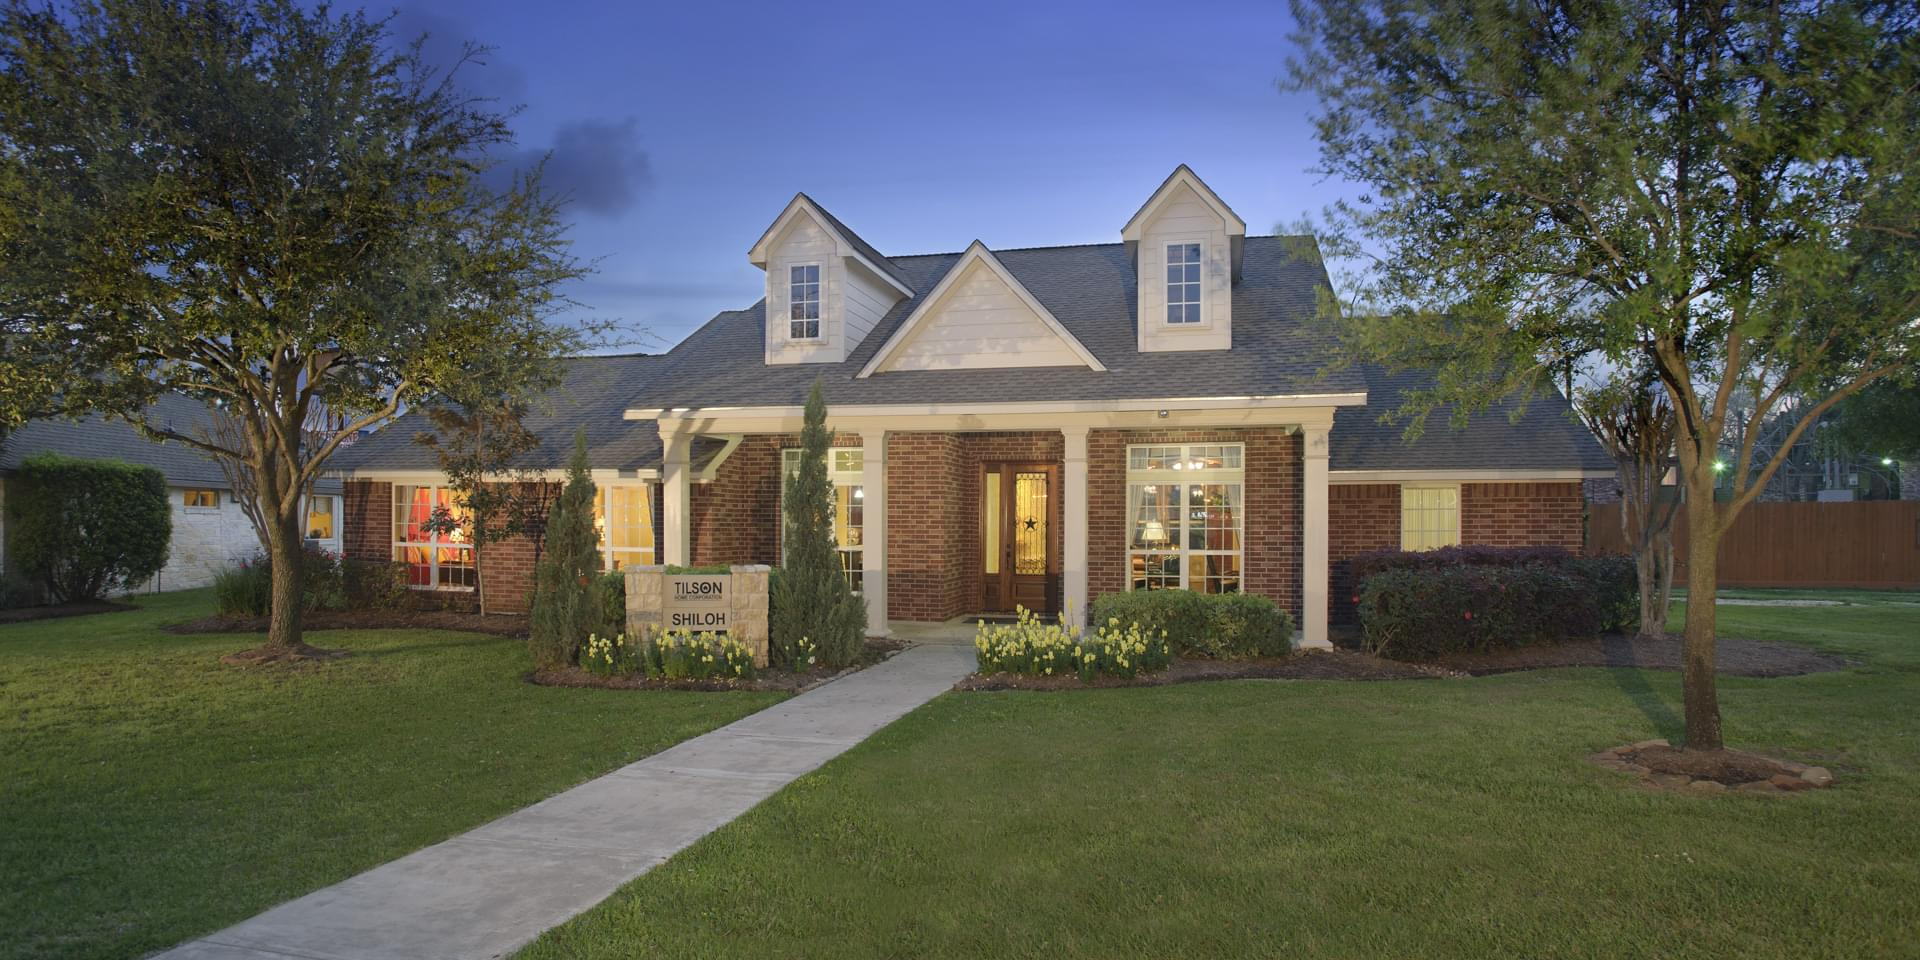 The Shiloh Custom Home Plan from Tilson Homes